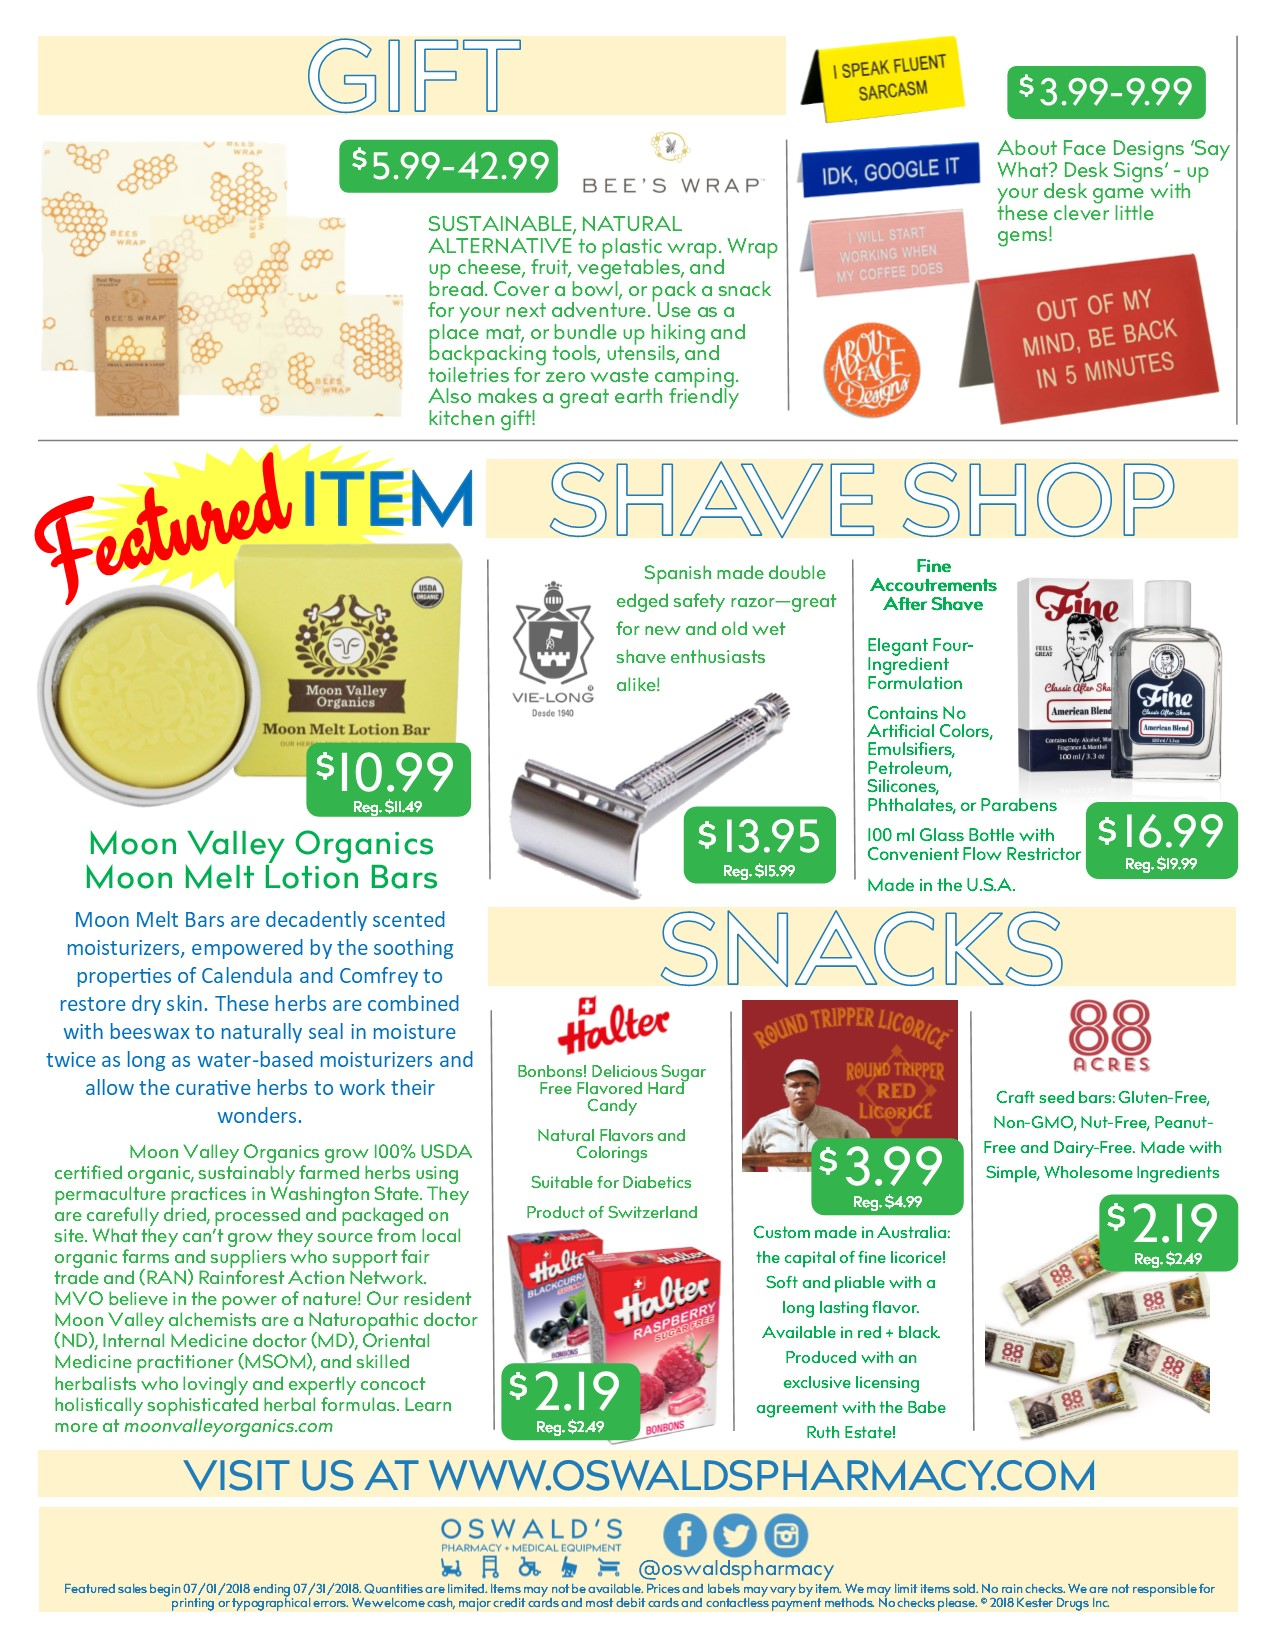 The Oswald's Promotions flyer from July 2018. Focuses on Sidewalk sale deals. Page 2.